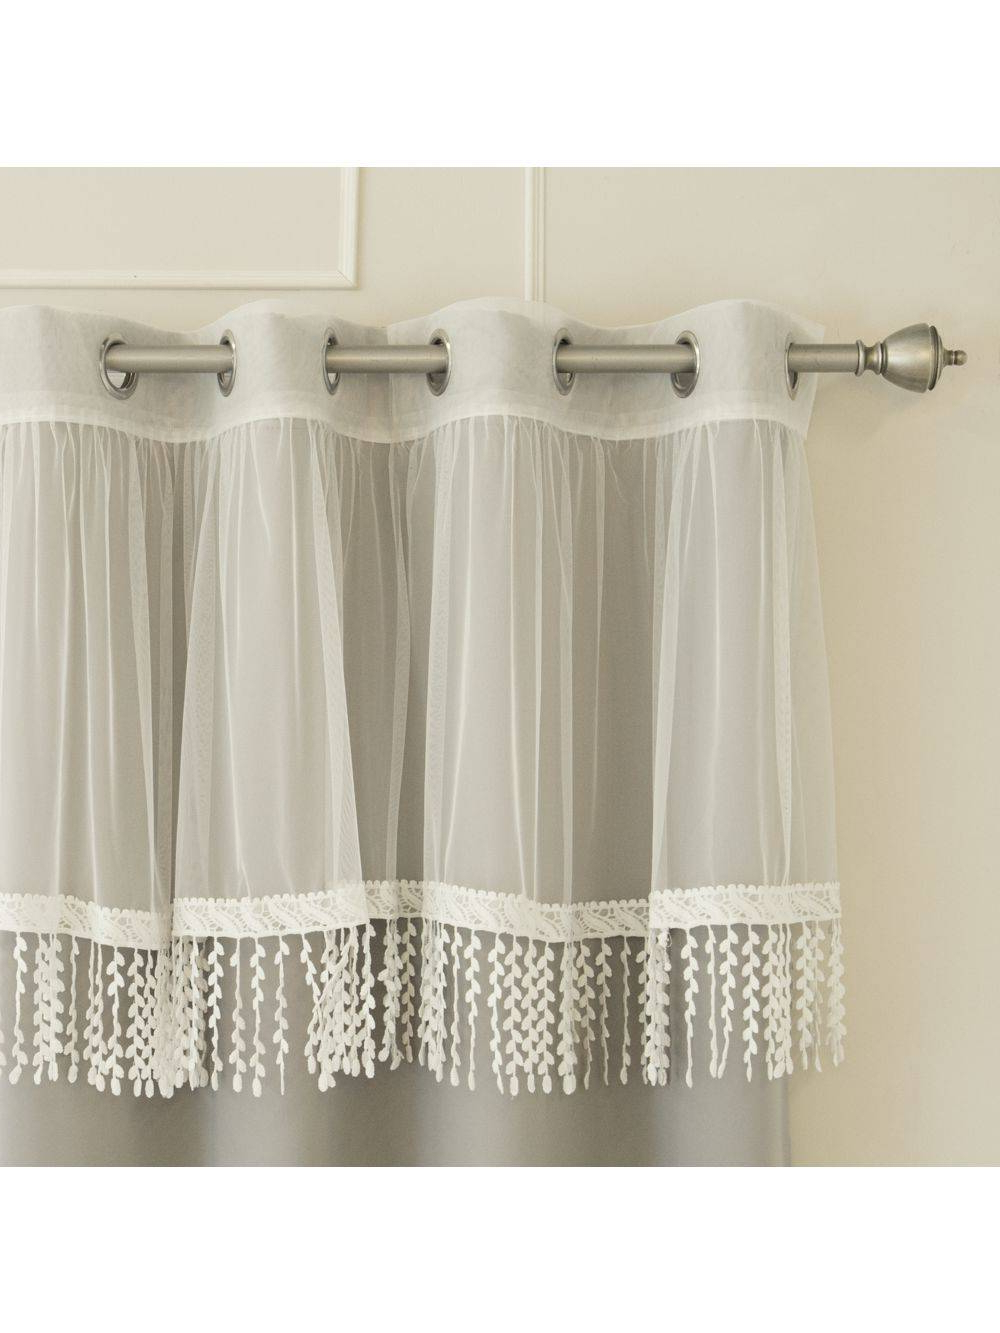 2020 Fluttering Butterfly White Embroidered Tier, Swag, Or Valance Kitchen Curtains Intended For Embroidered Fluttering Butterfly Kitchen Curtains Tiers Swag (View 6 of 20)